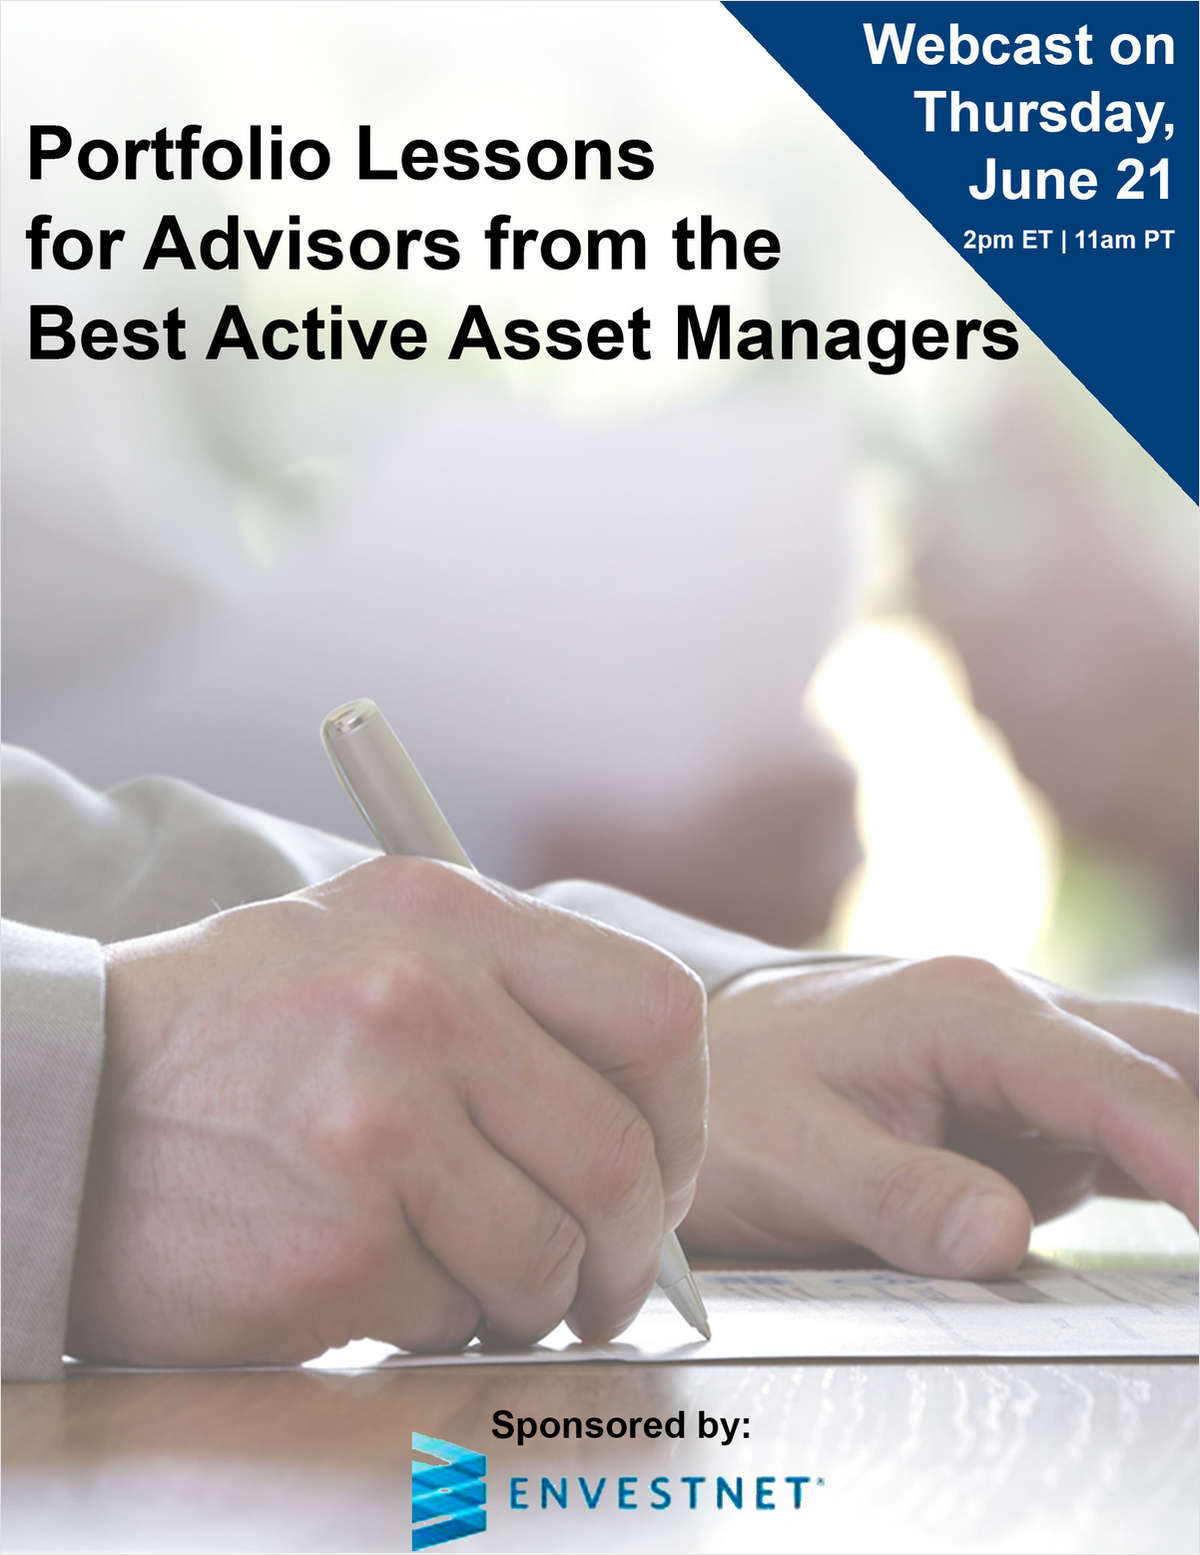 Portfolio Lessons for Advisors from the Best Active Asset Managers